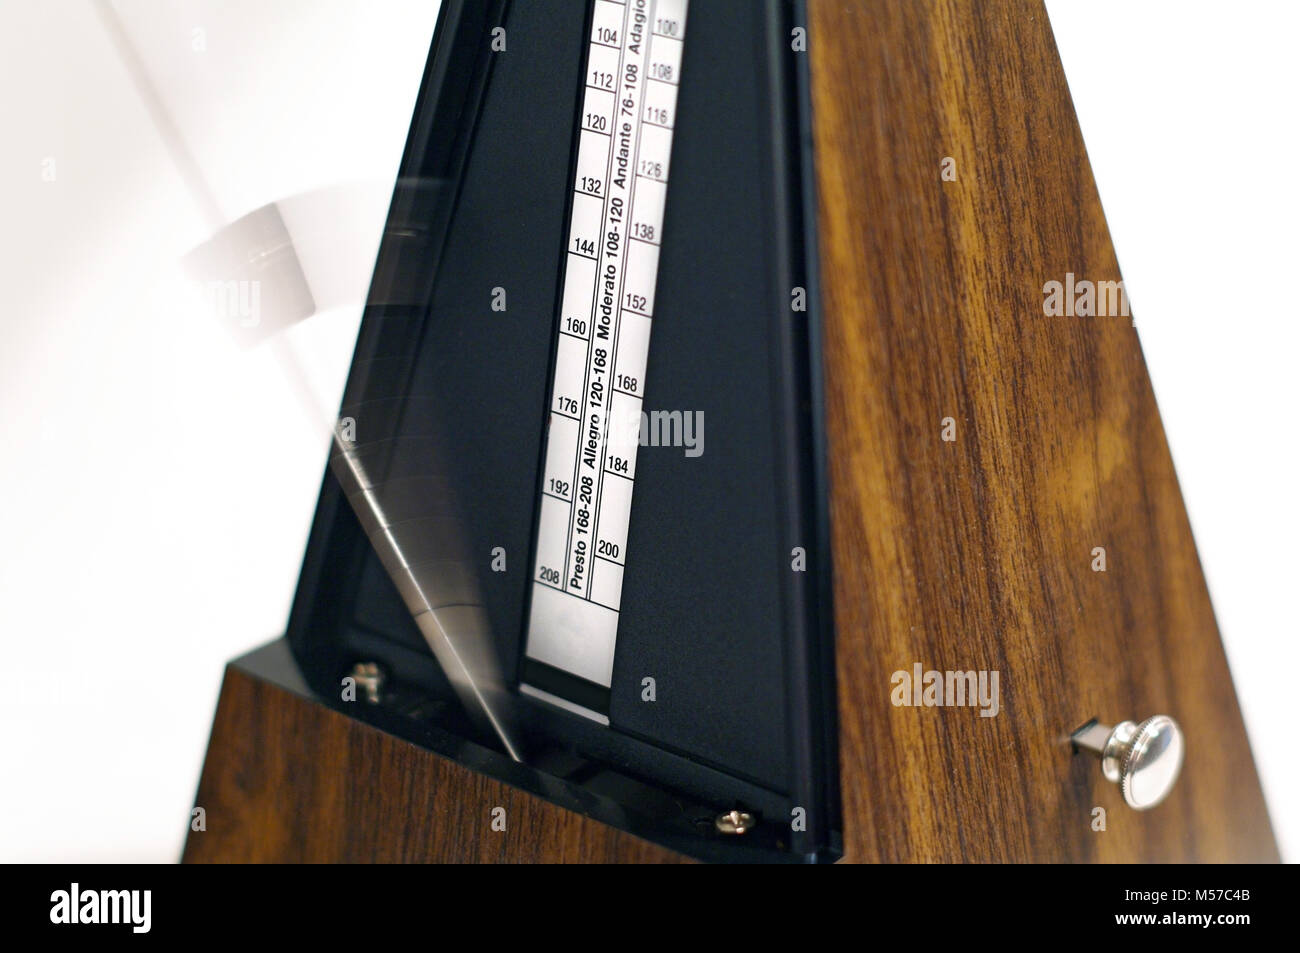 Metronome in action isolated and on a plain background. Calgary, Alberta, Canada. - Stock Image